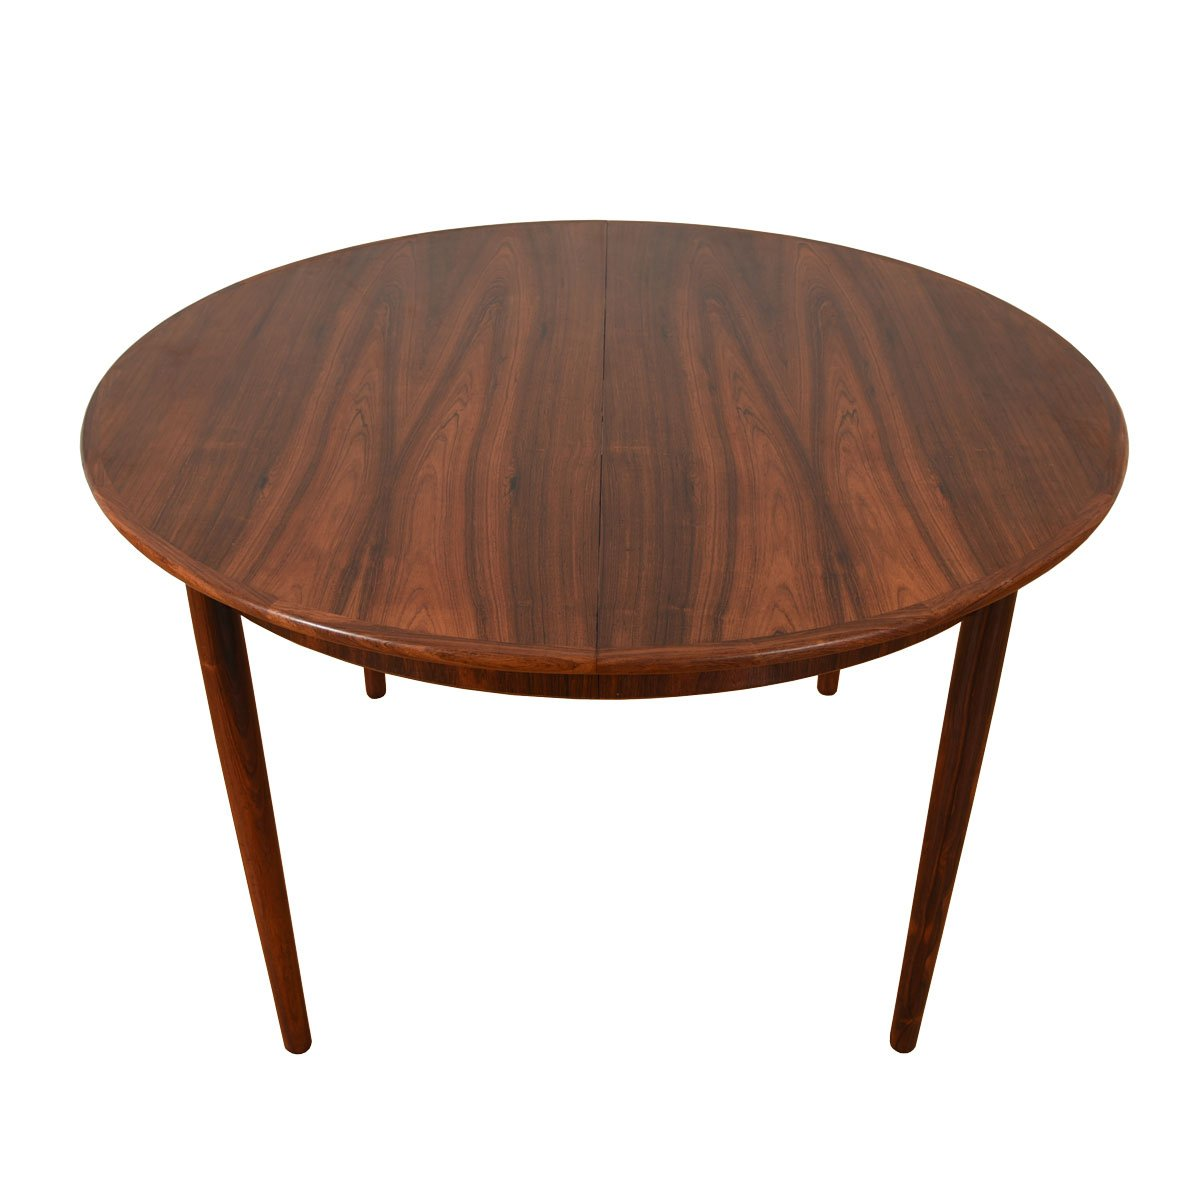 Danish Rosewood Round-to-Oval Expanding Dining Table